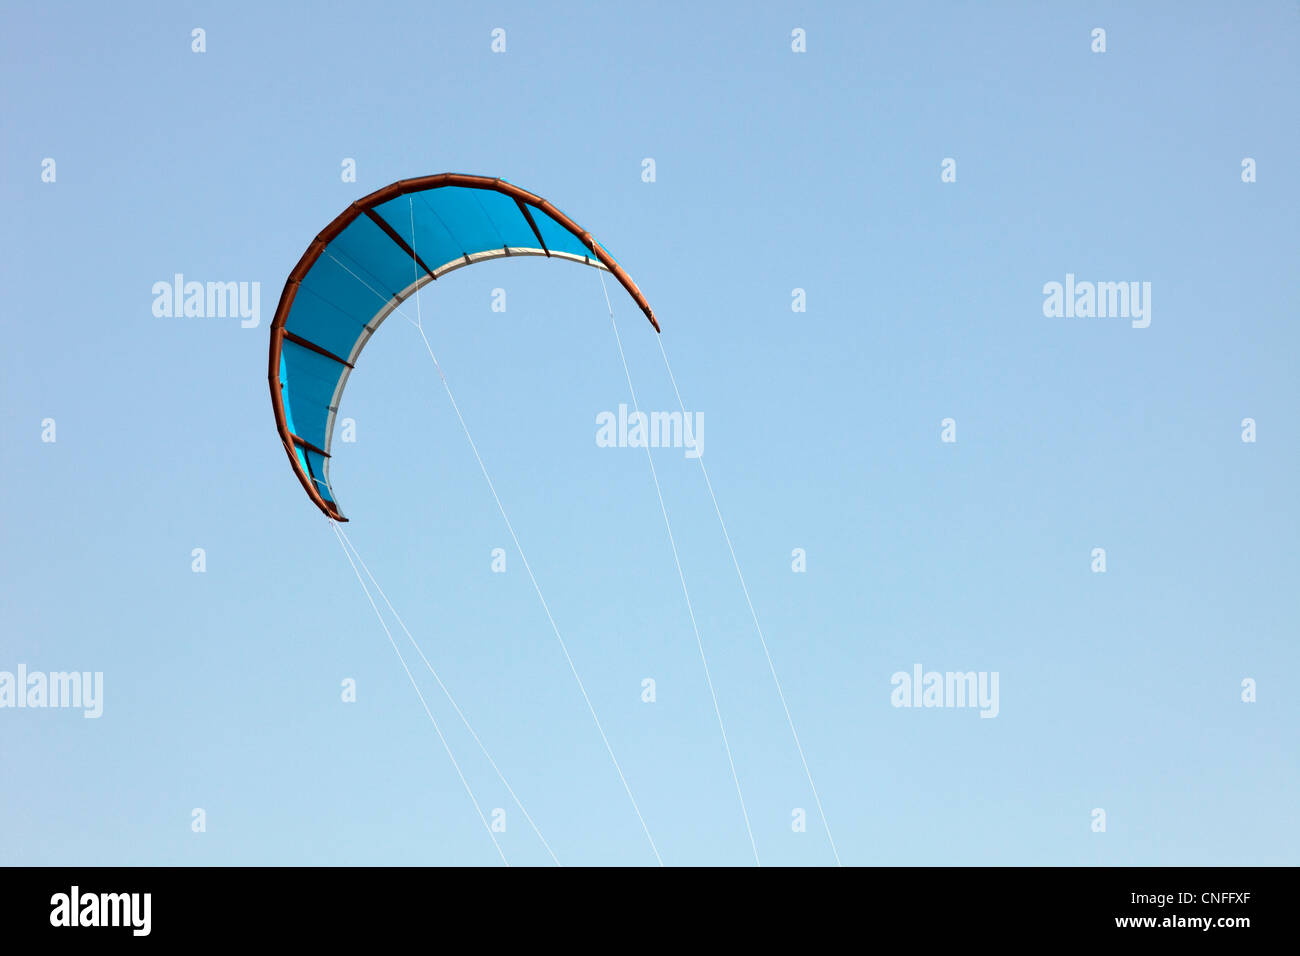 Rogallo Wing Stock Photos & Rogallo Wing Stock Images - Alamy